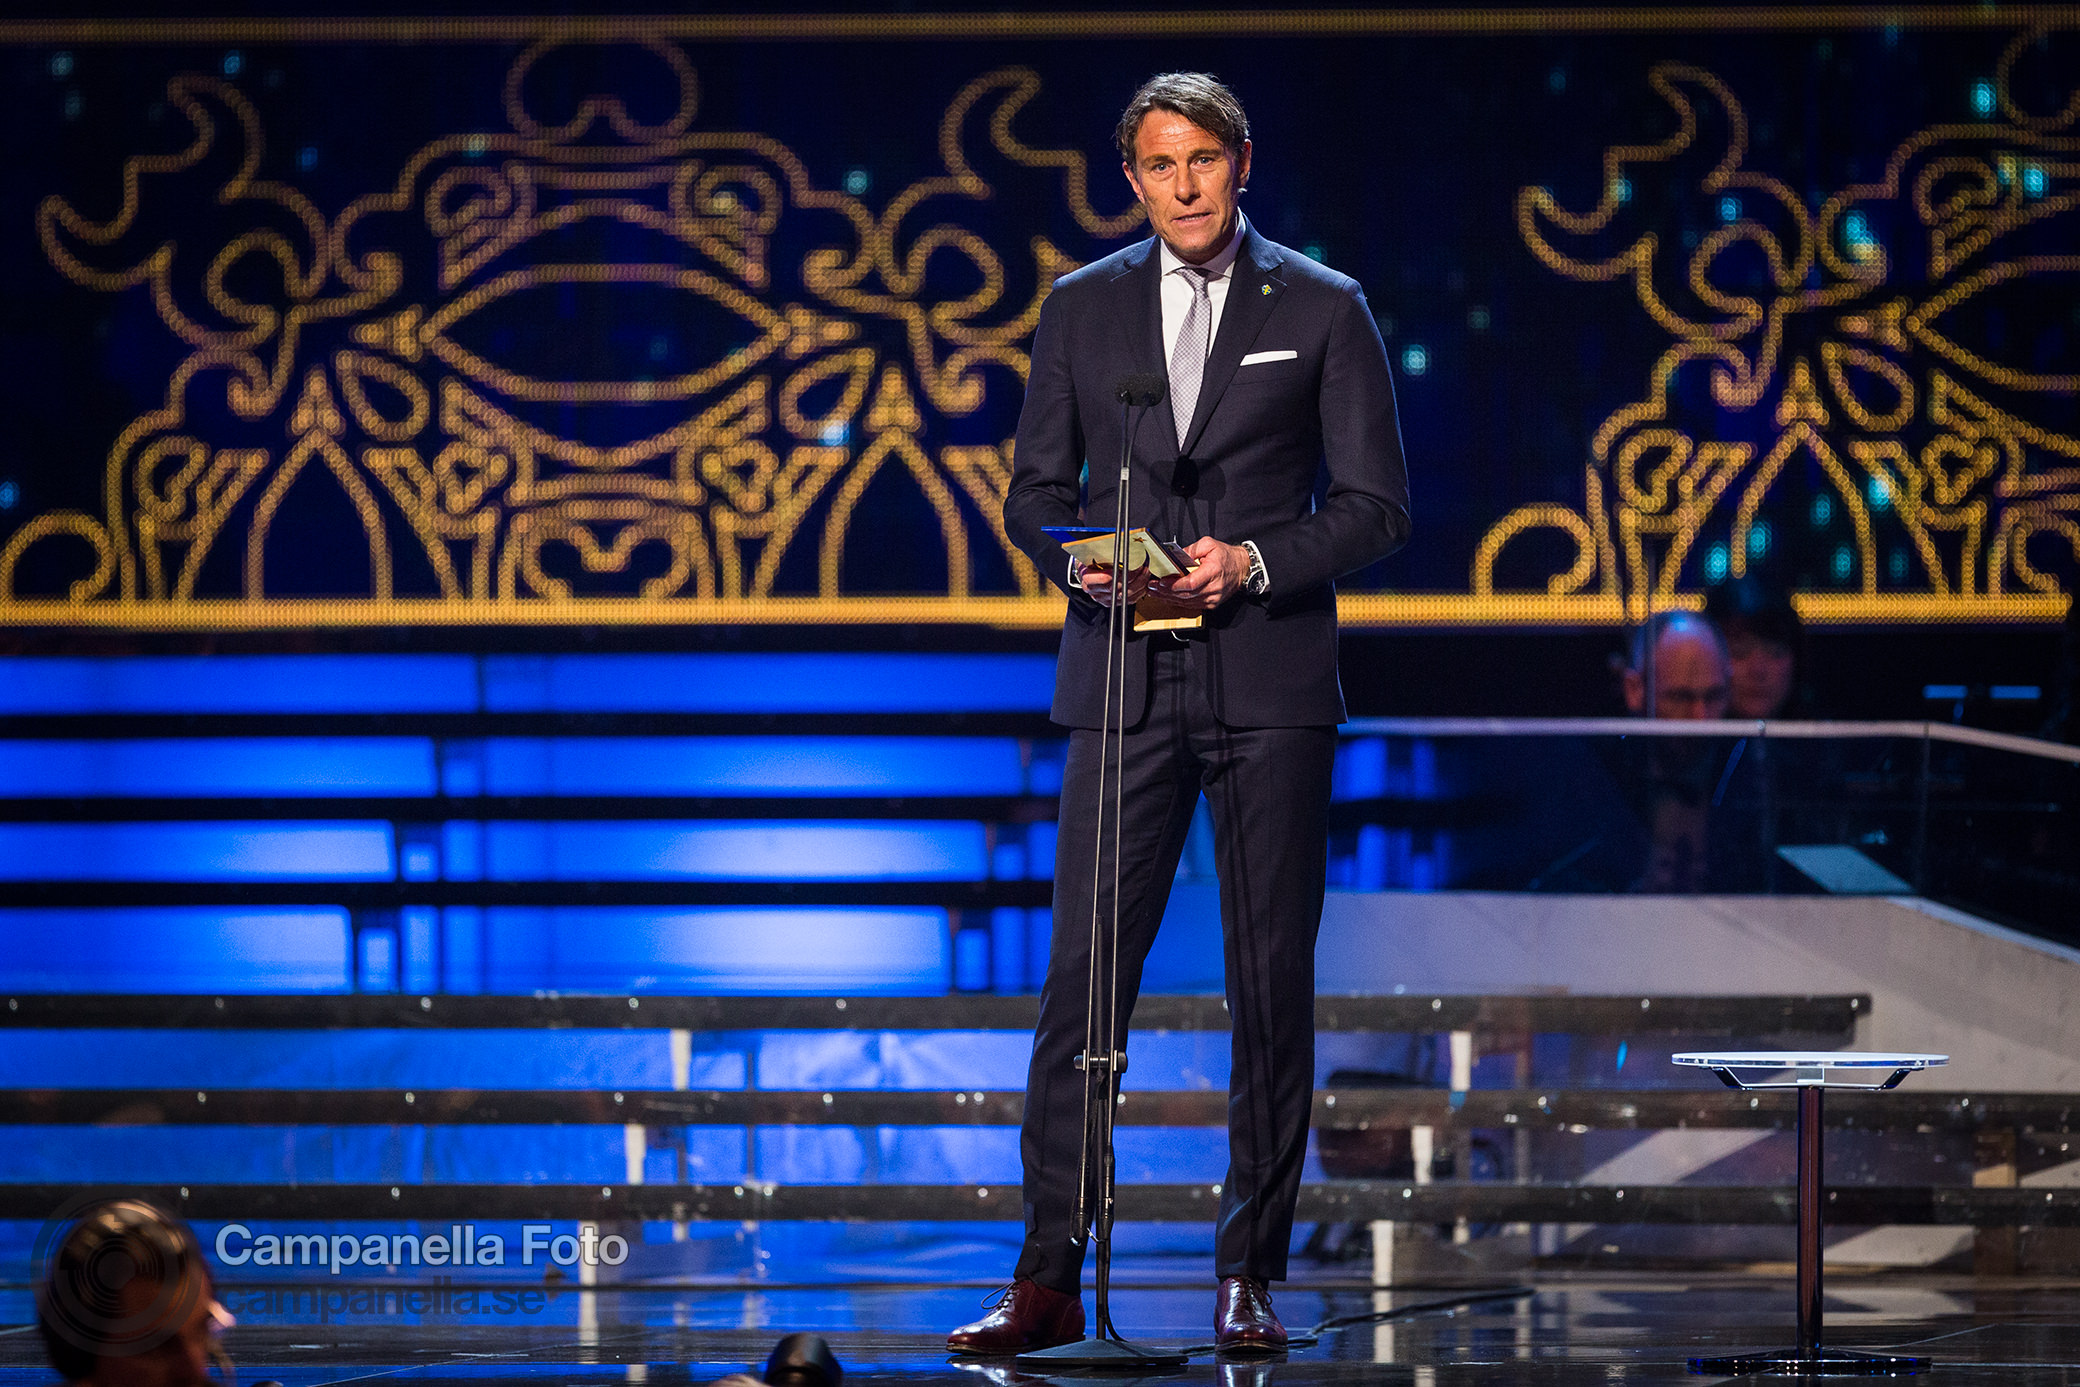 Idrottsgalan 2016: Swedish Sports Awards - Michael Campanella Photography